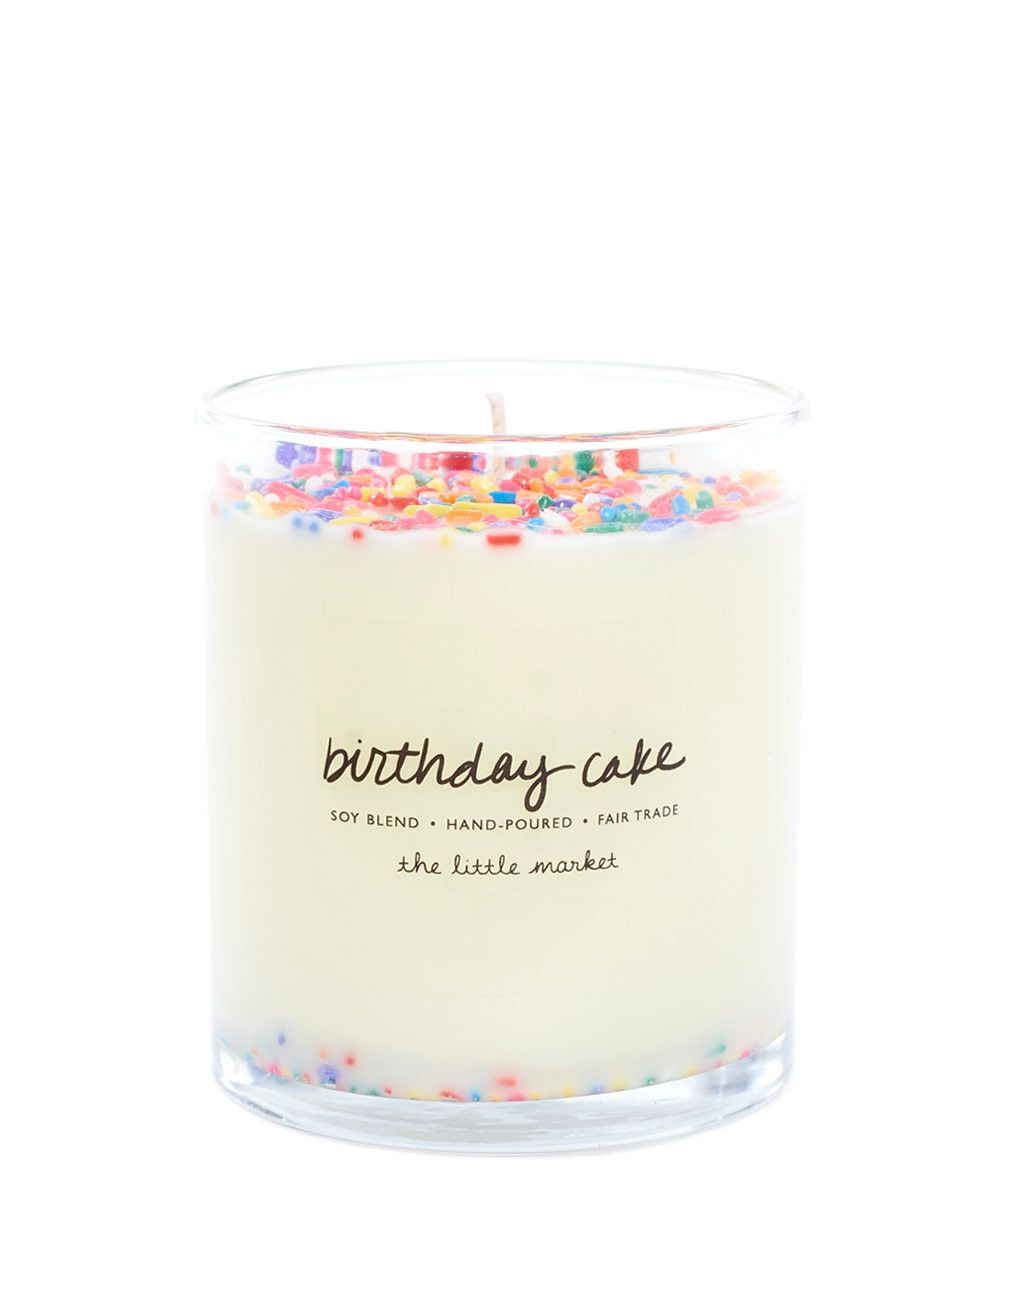 Celebrate your birthday everyday with the delicious scent of a